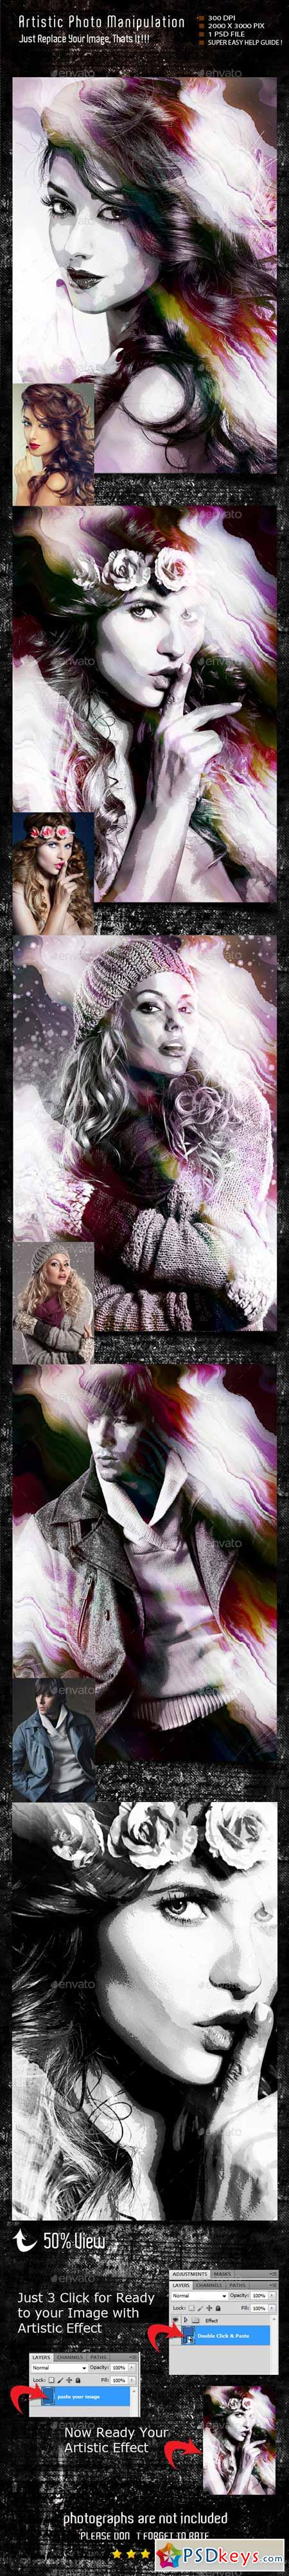 GraphicRiver Artistic Photo Manipulation 10074531